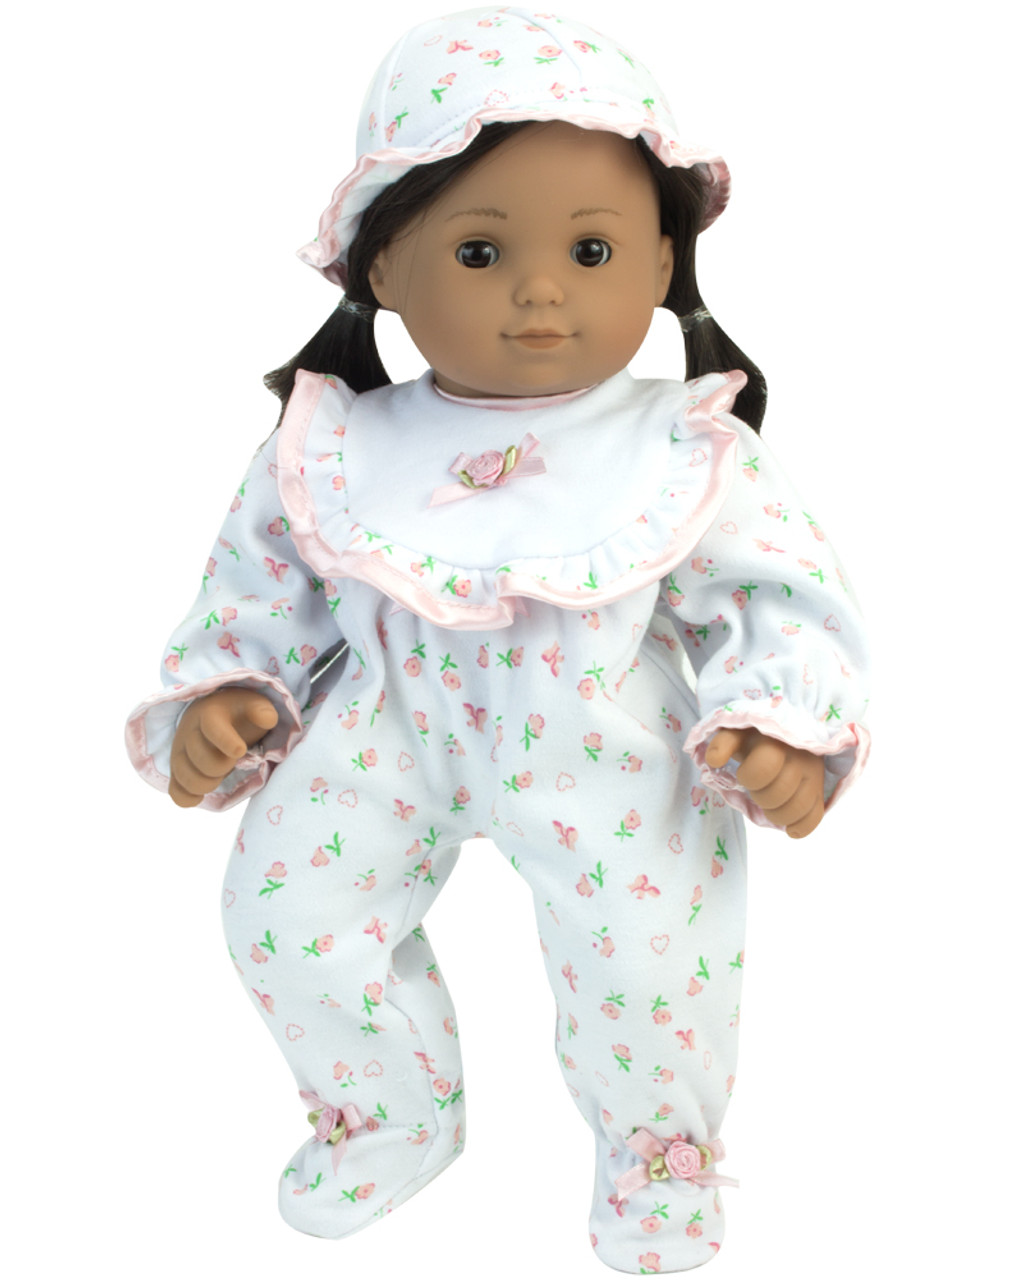 a5f434f028 Floral Print Sleeper For 15 Inch Baby Dolls - My Doll s Life